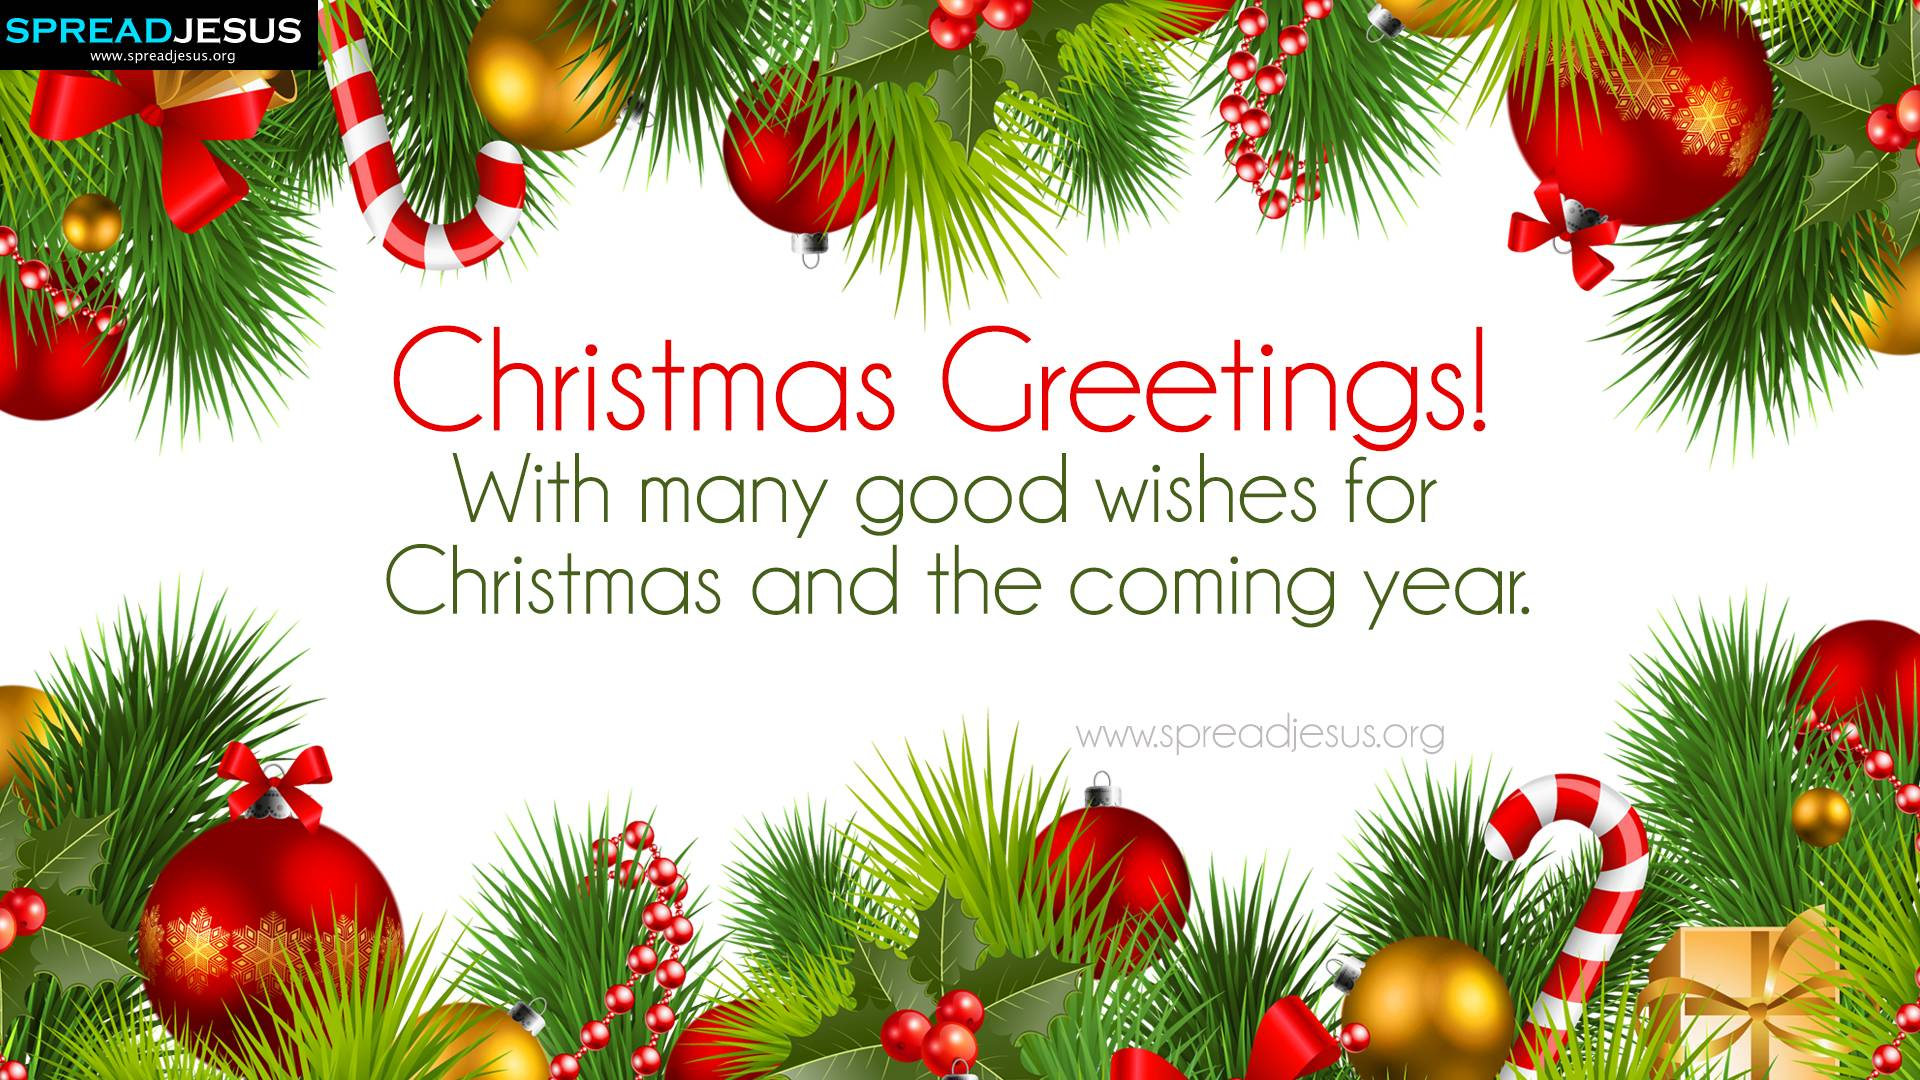 Merry Christmas Wallpaper.Merry Christmas Wallpapers Top Free Merry Christmas